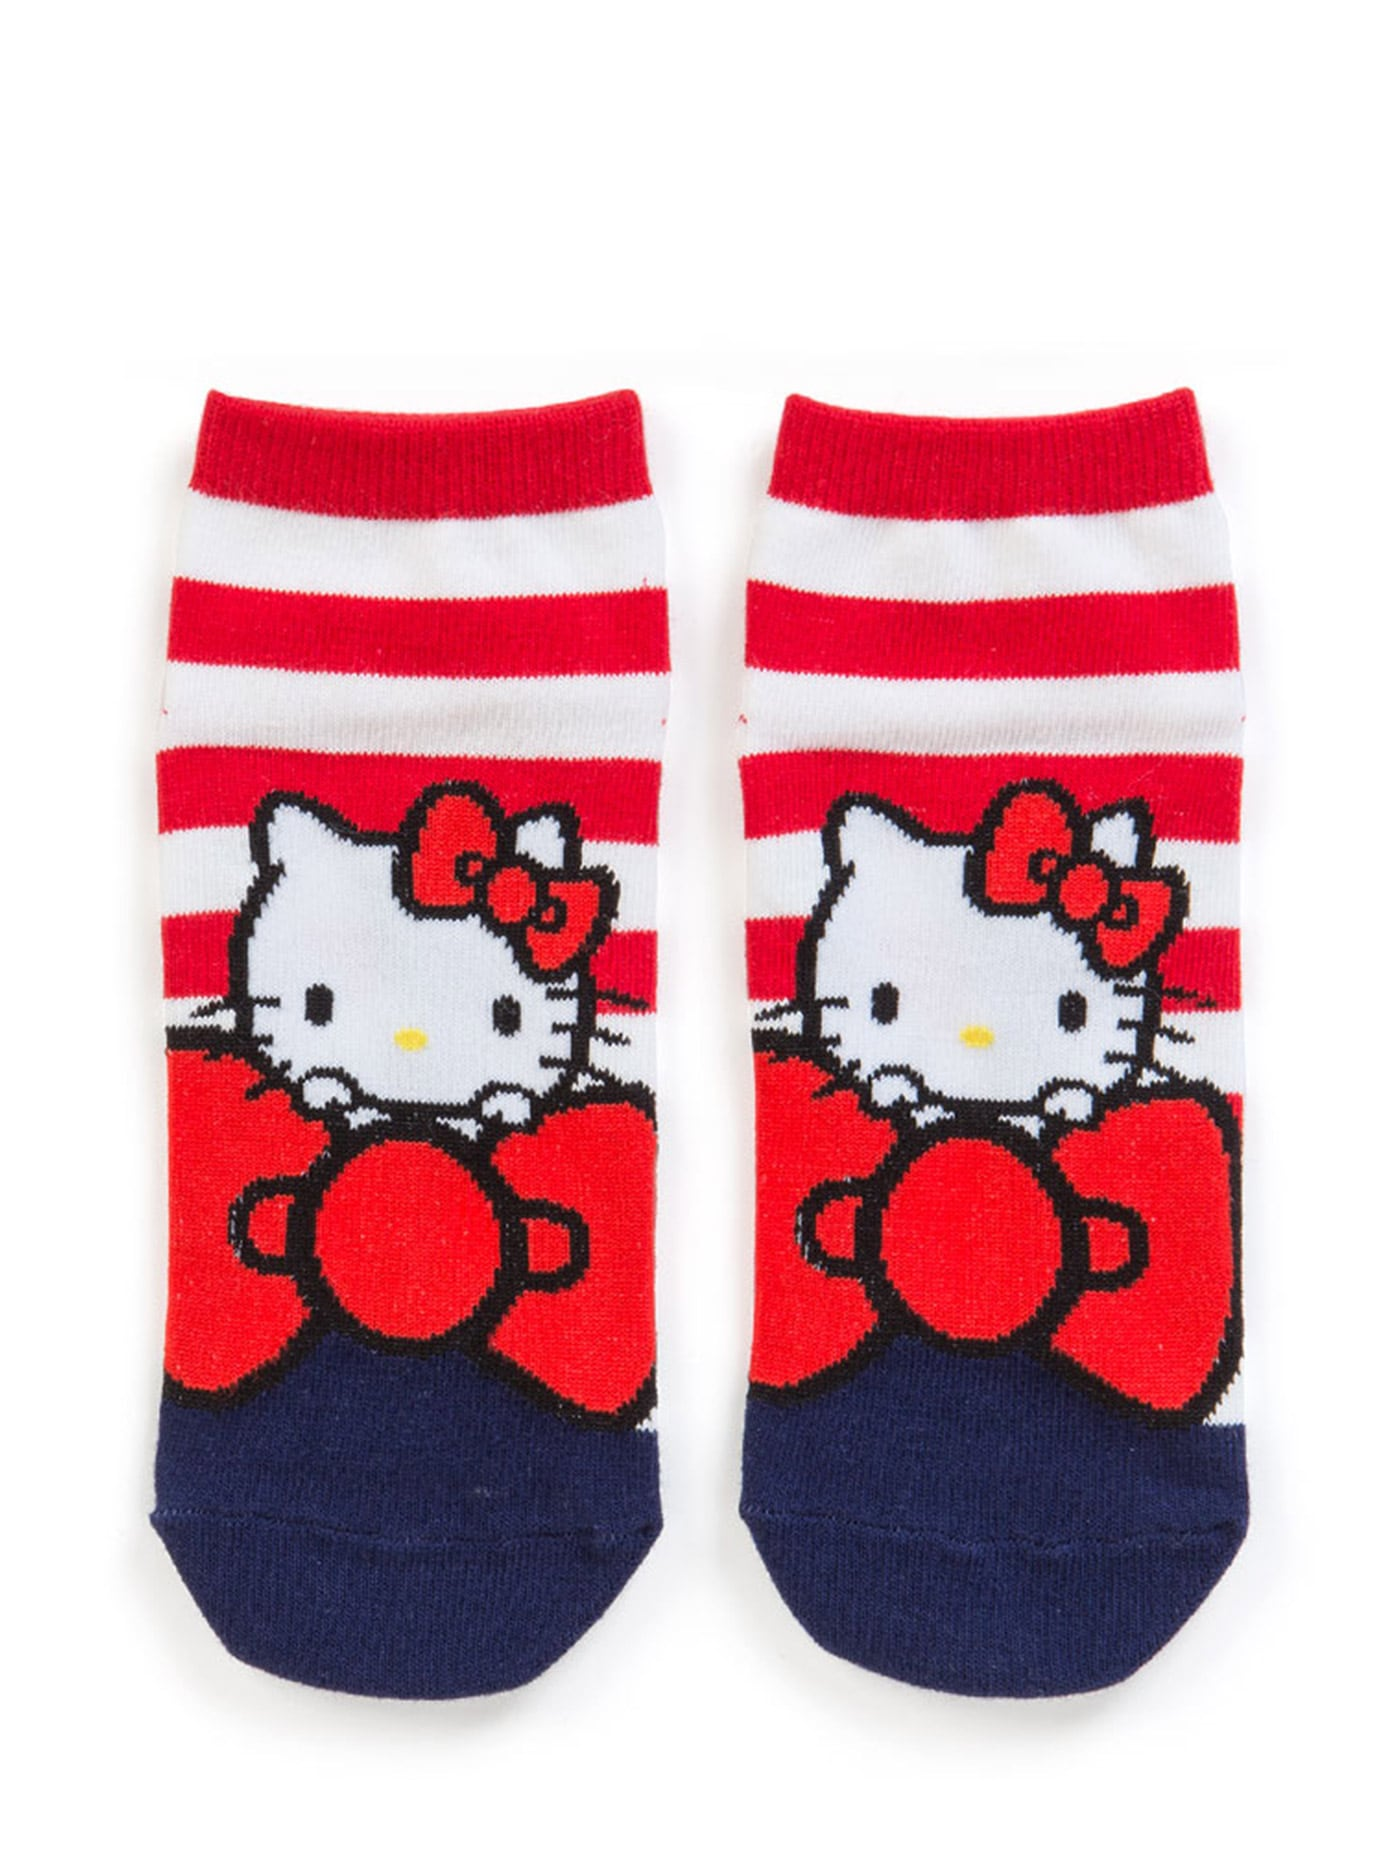 b02740c54 SANRIO HELLO KITTY SOCKS: ADULT BIG RIBBON KT 293059KT0218 Multicolor